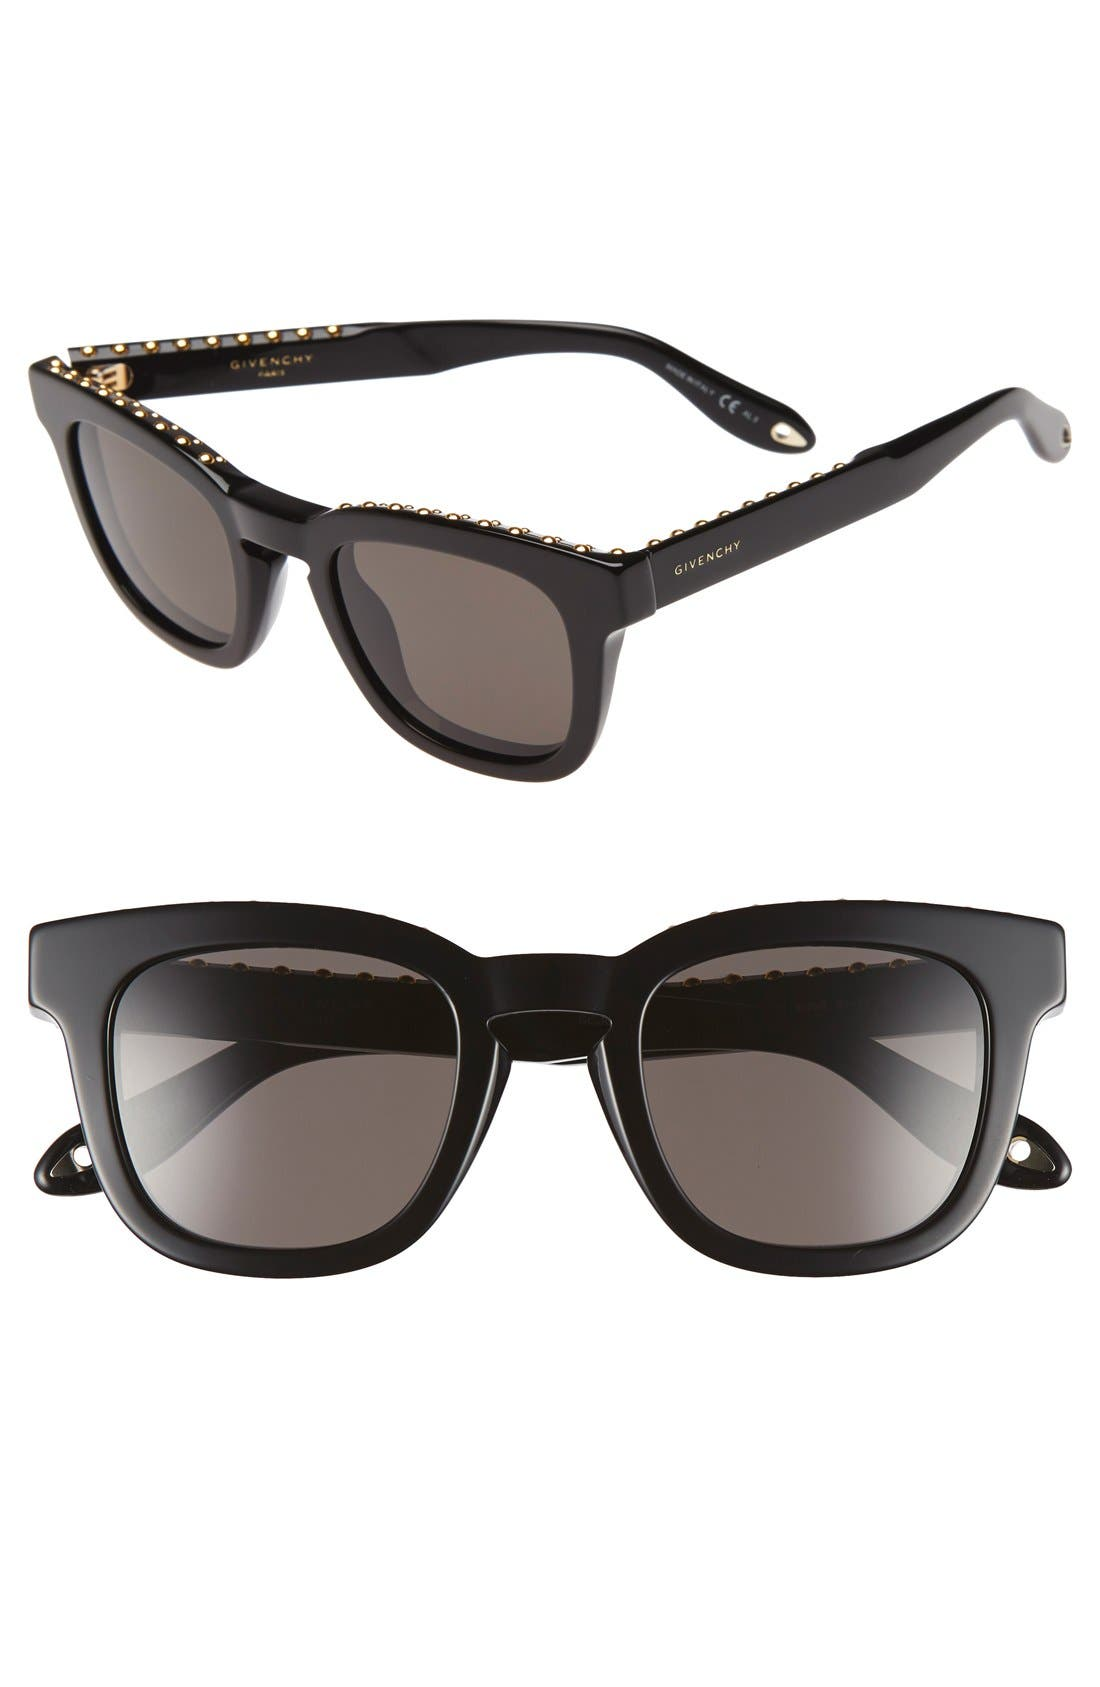 GIVENCHY 7006/S 48mm Sunglasses